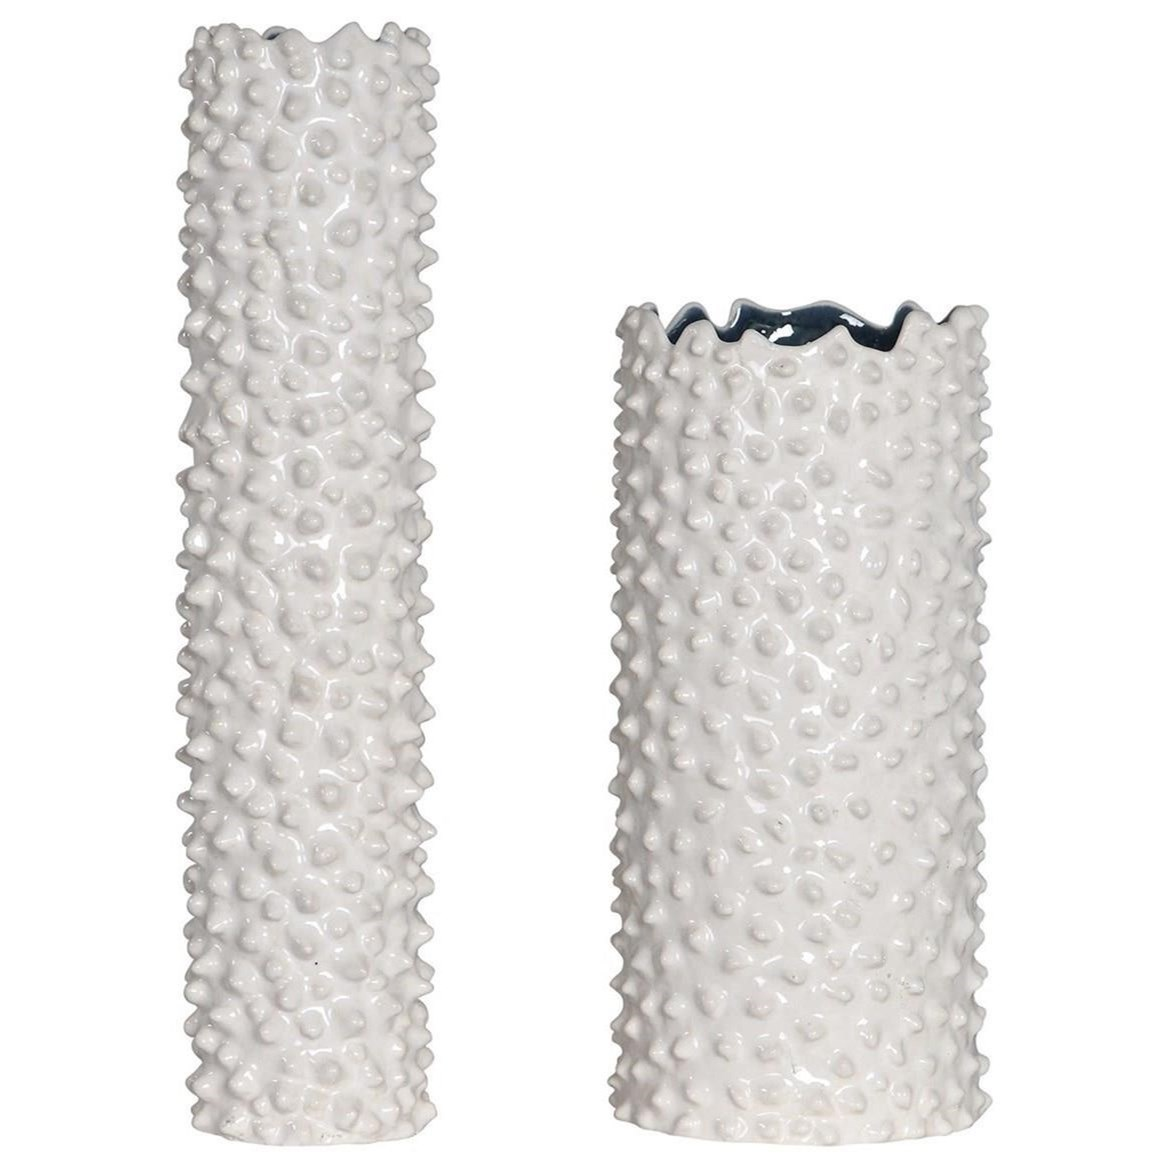 Accessories - Vases and Urns Ciji White Vases, Set/2 by Uttermost at Mueller Furniture